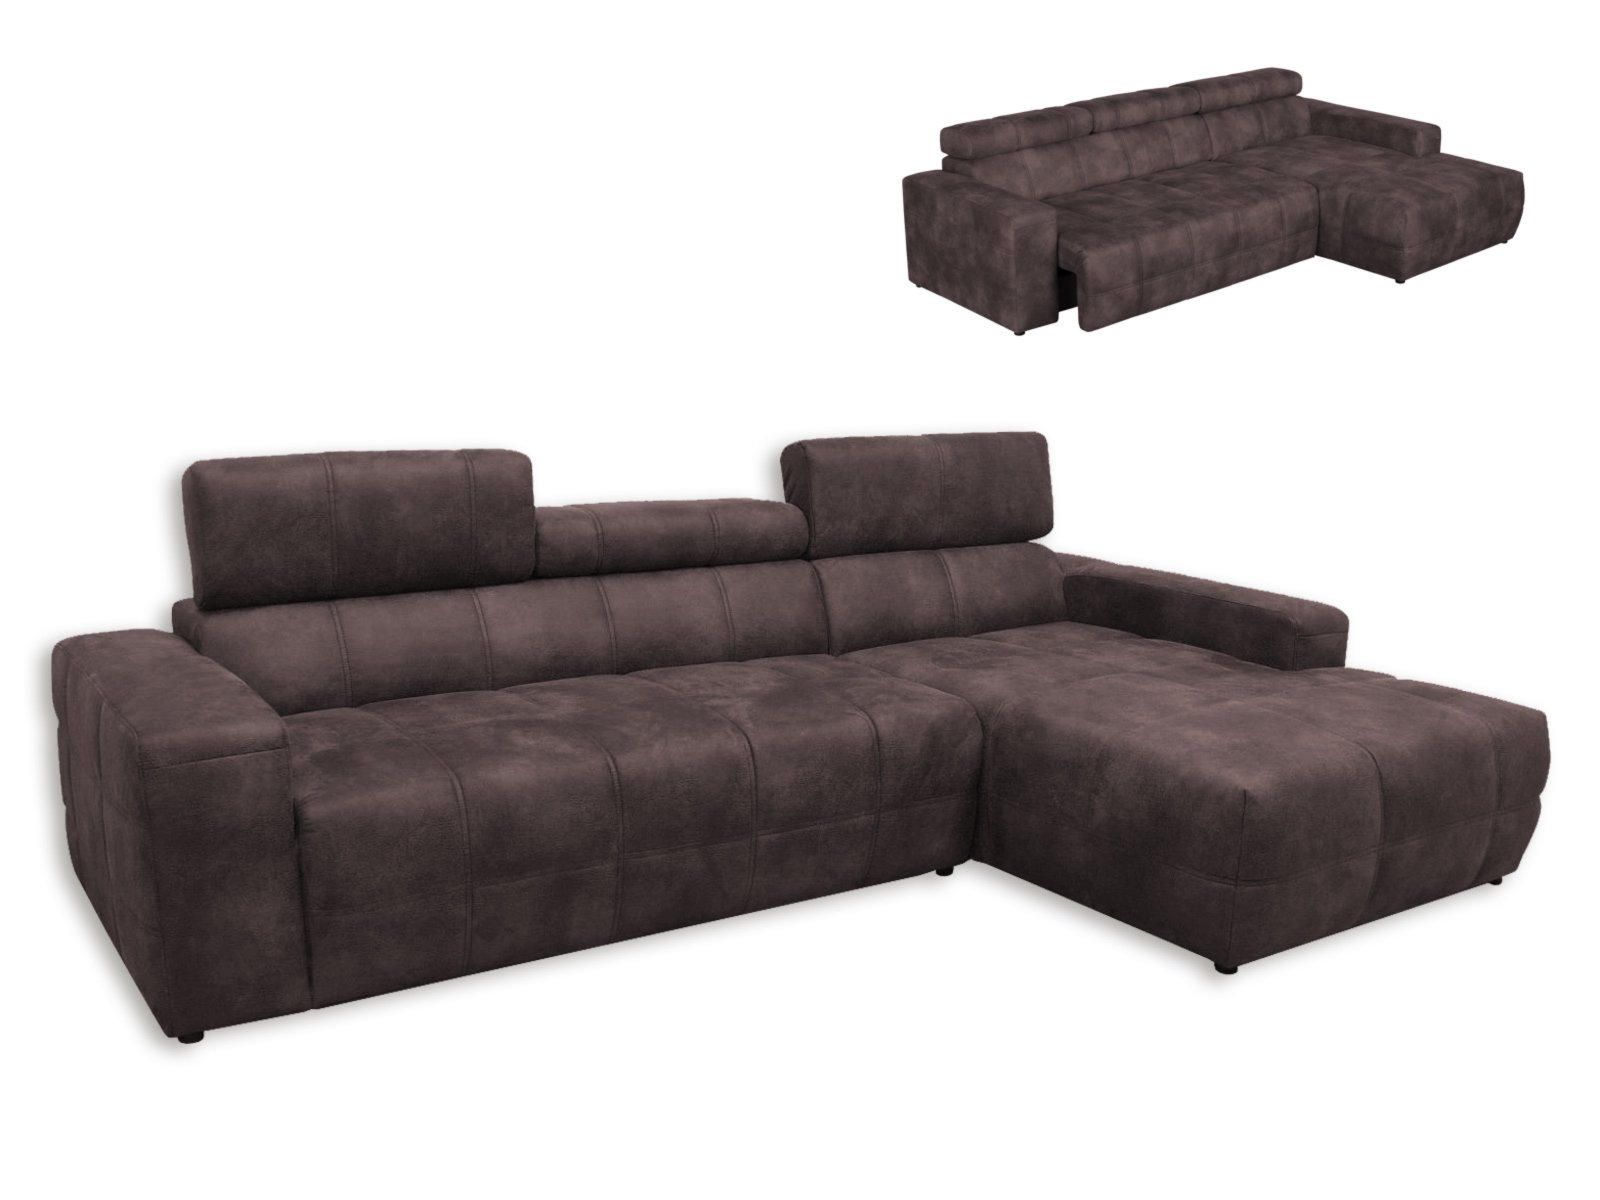 ecksofa dunkelbraun recamiere rechts mit kopfteil. Black Bedroom Furniture Sets. Home Design Ideas